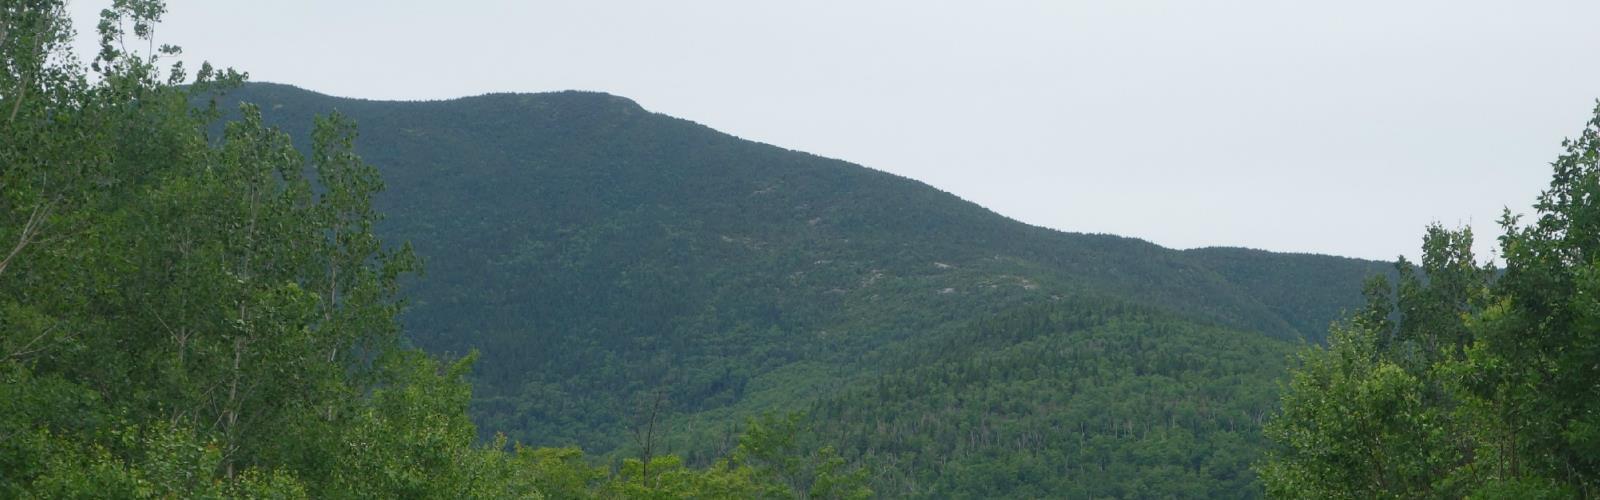 Saddleback Mountain, Maine - Hiking